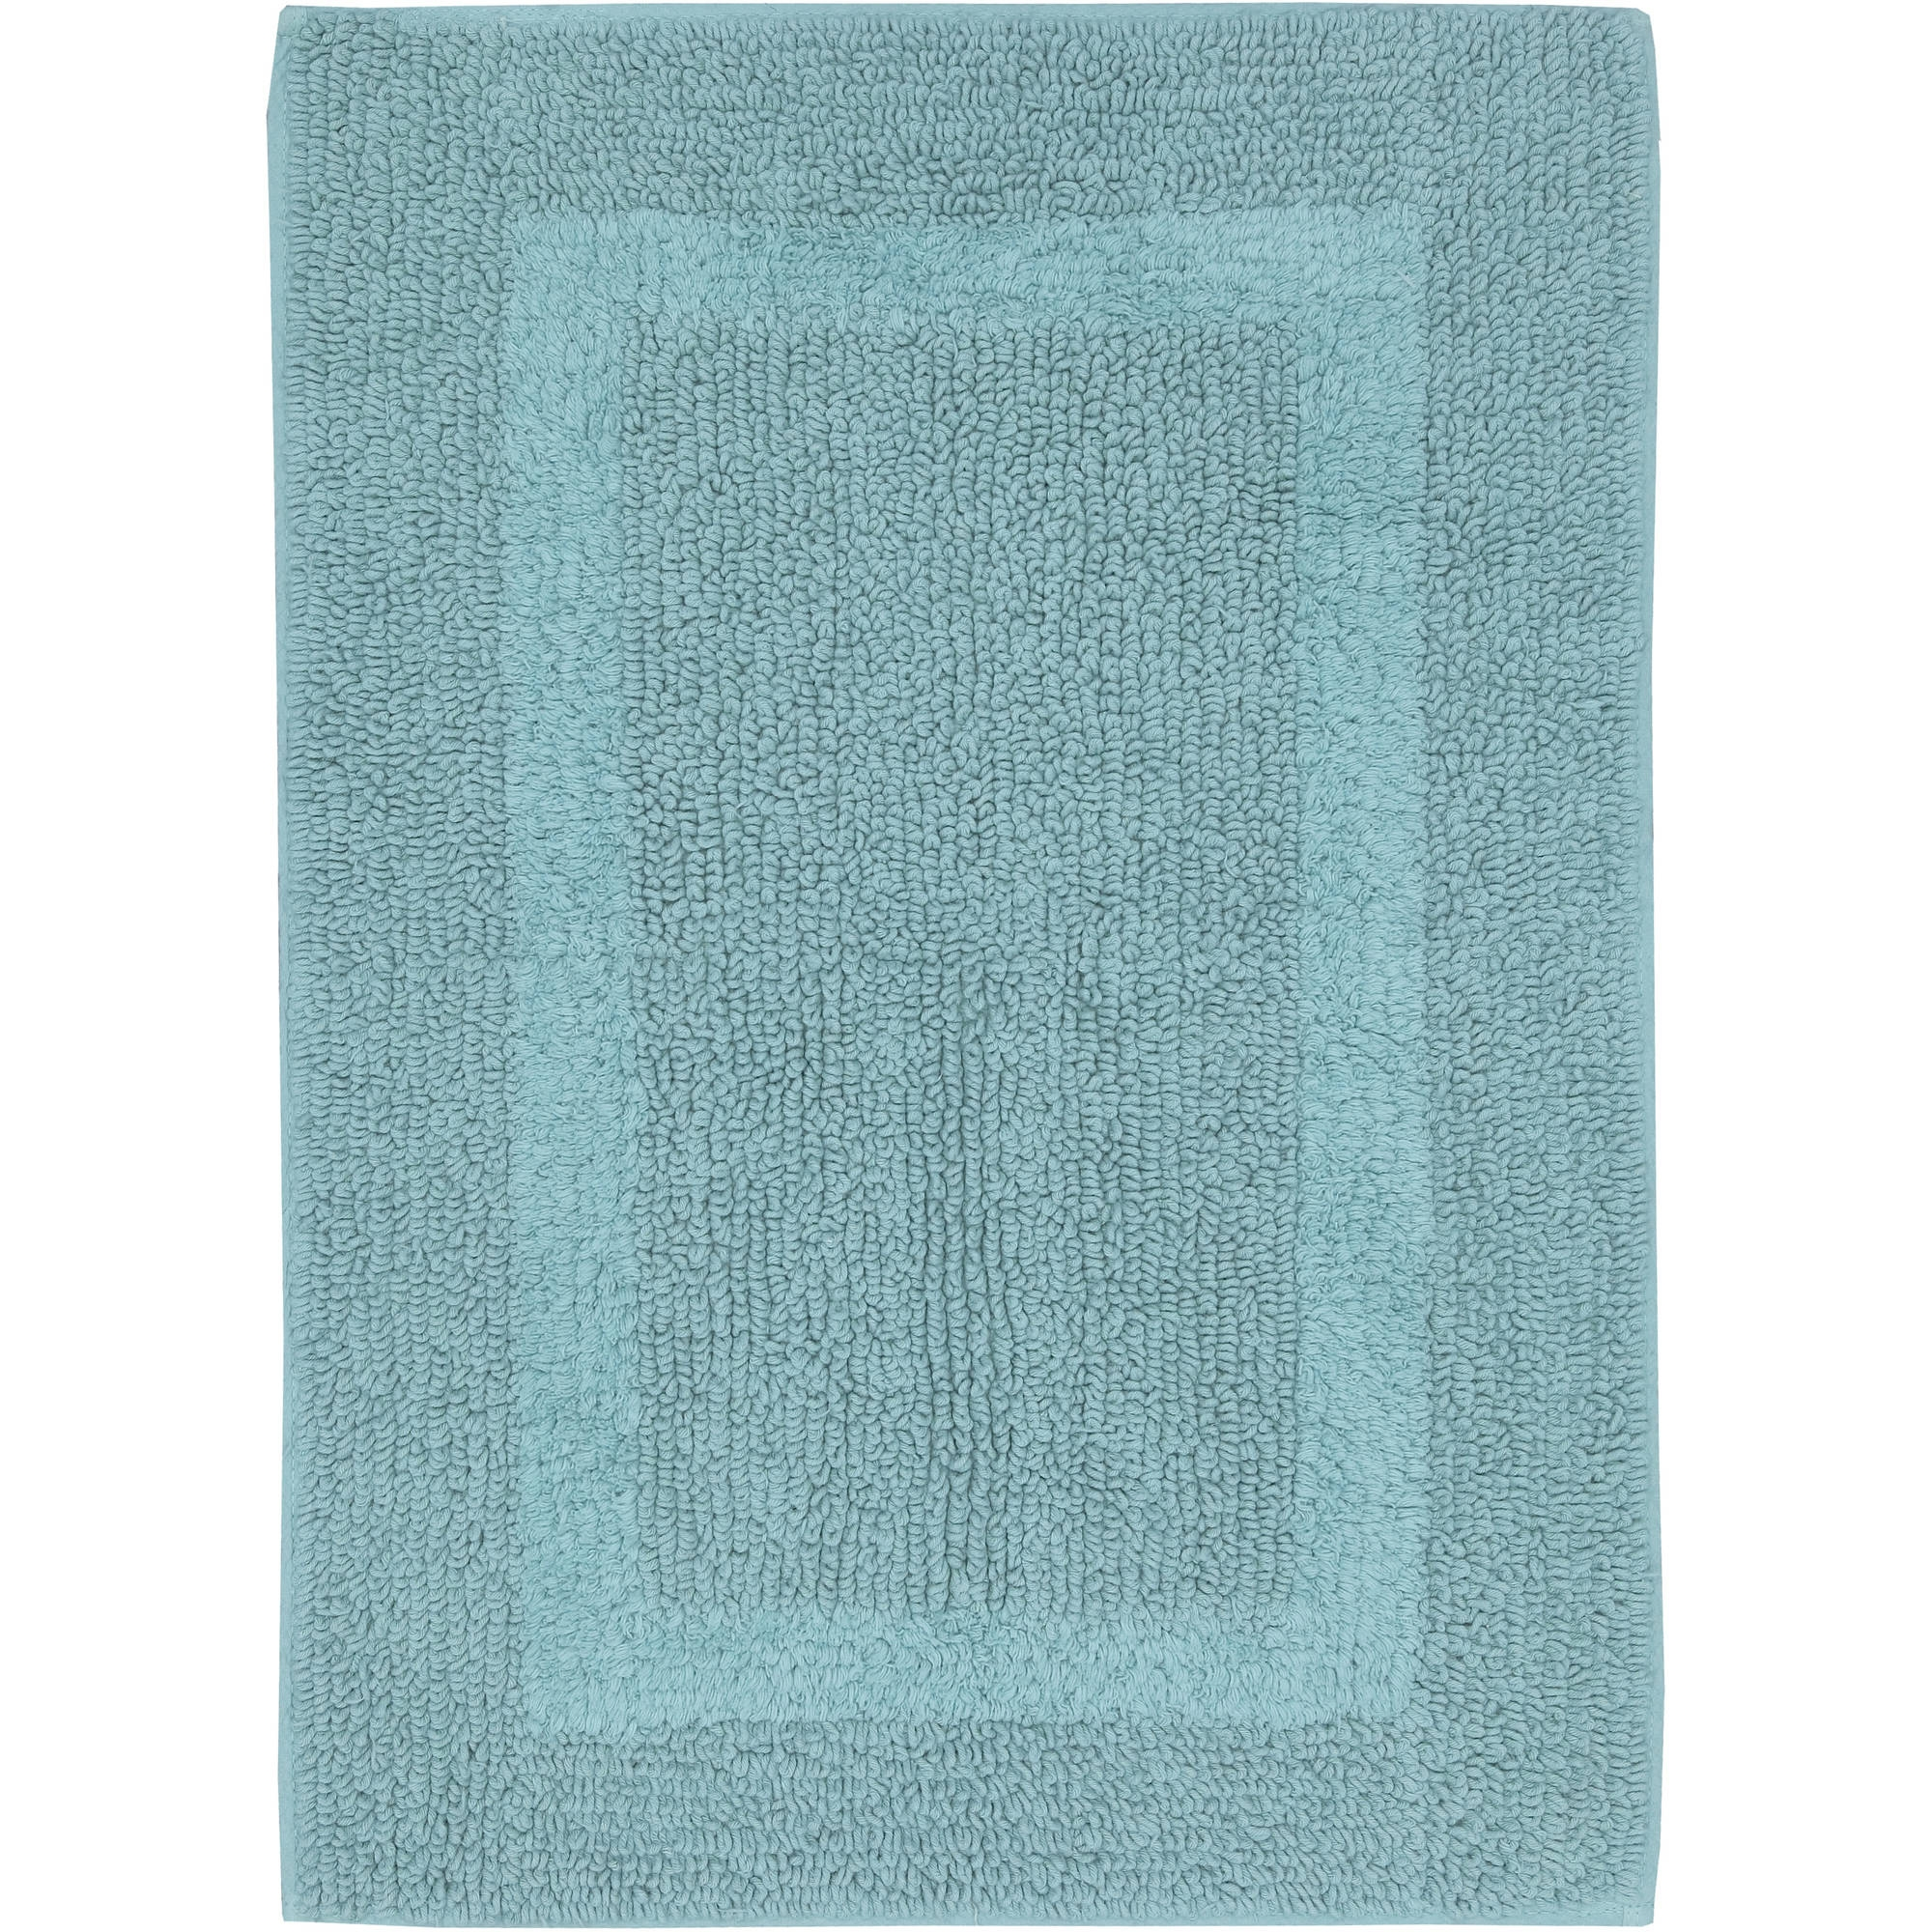 Dark Coral Bath Rugs